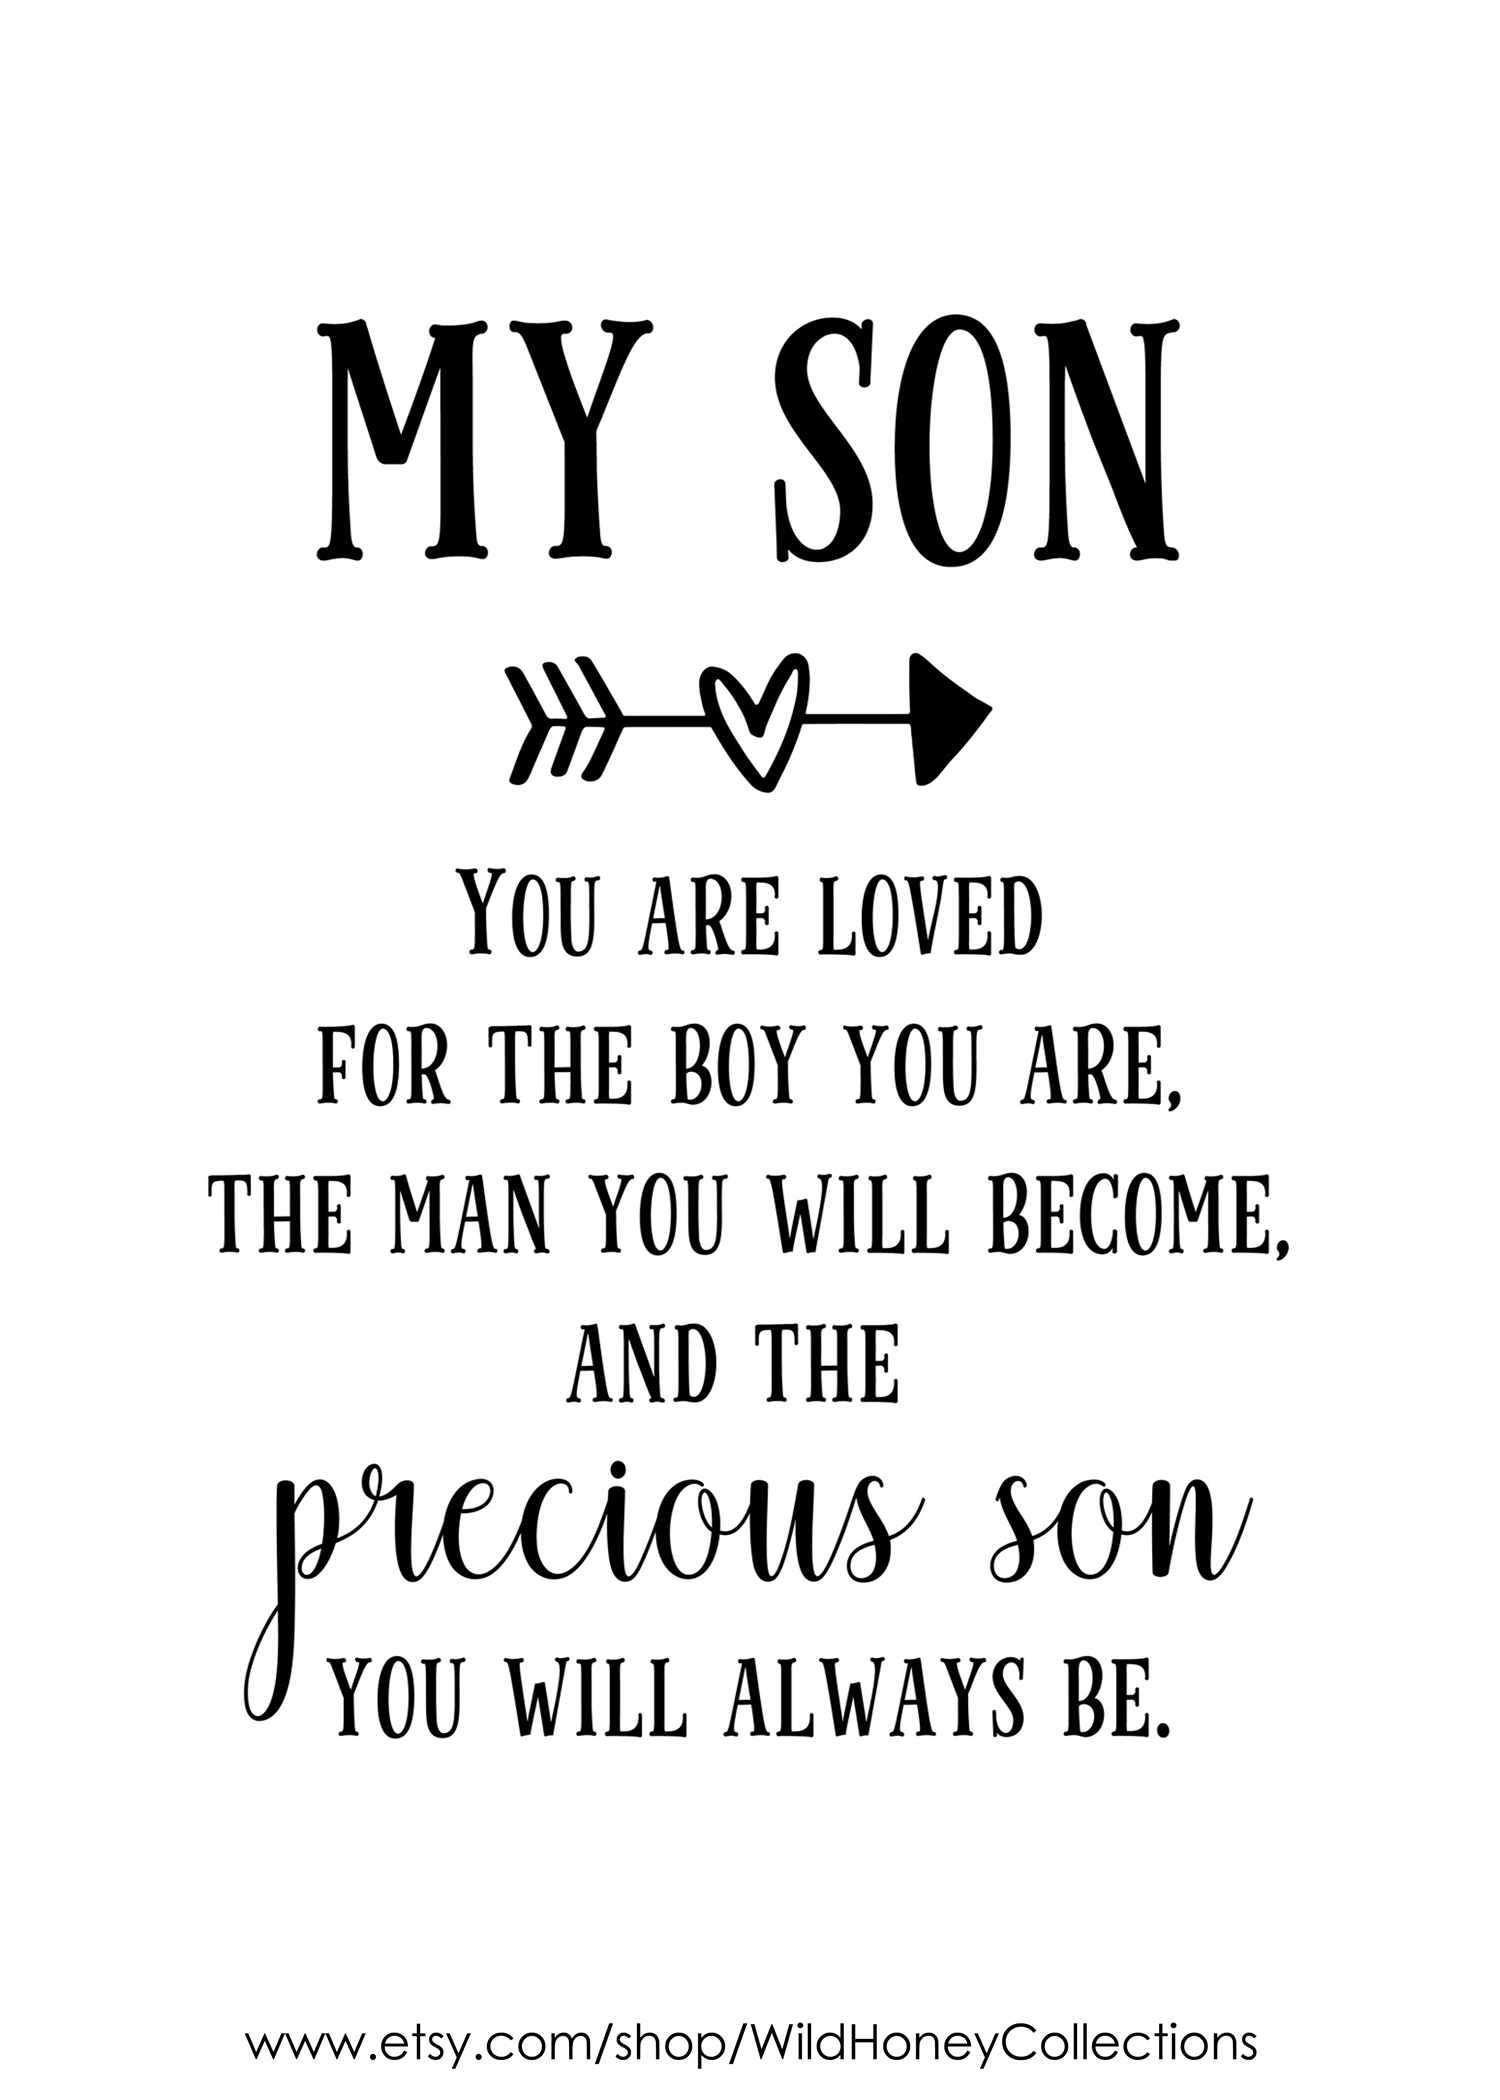 My Son Poem Printable Wall Decor Mother To Son Gift Father To Son Gift 5 Different Color Backgrounds Instant Download In 2021 My Son Quotes Son Poems Son Quotes